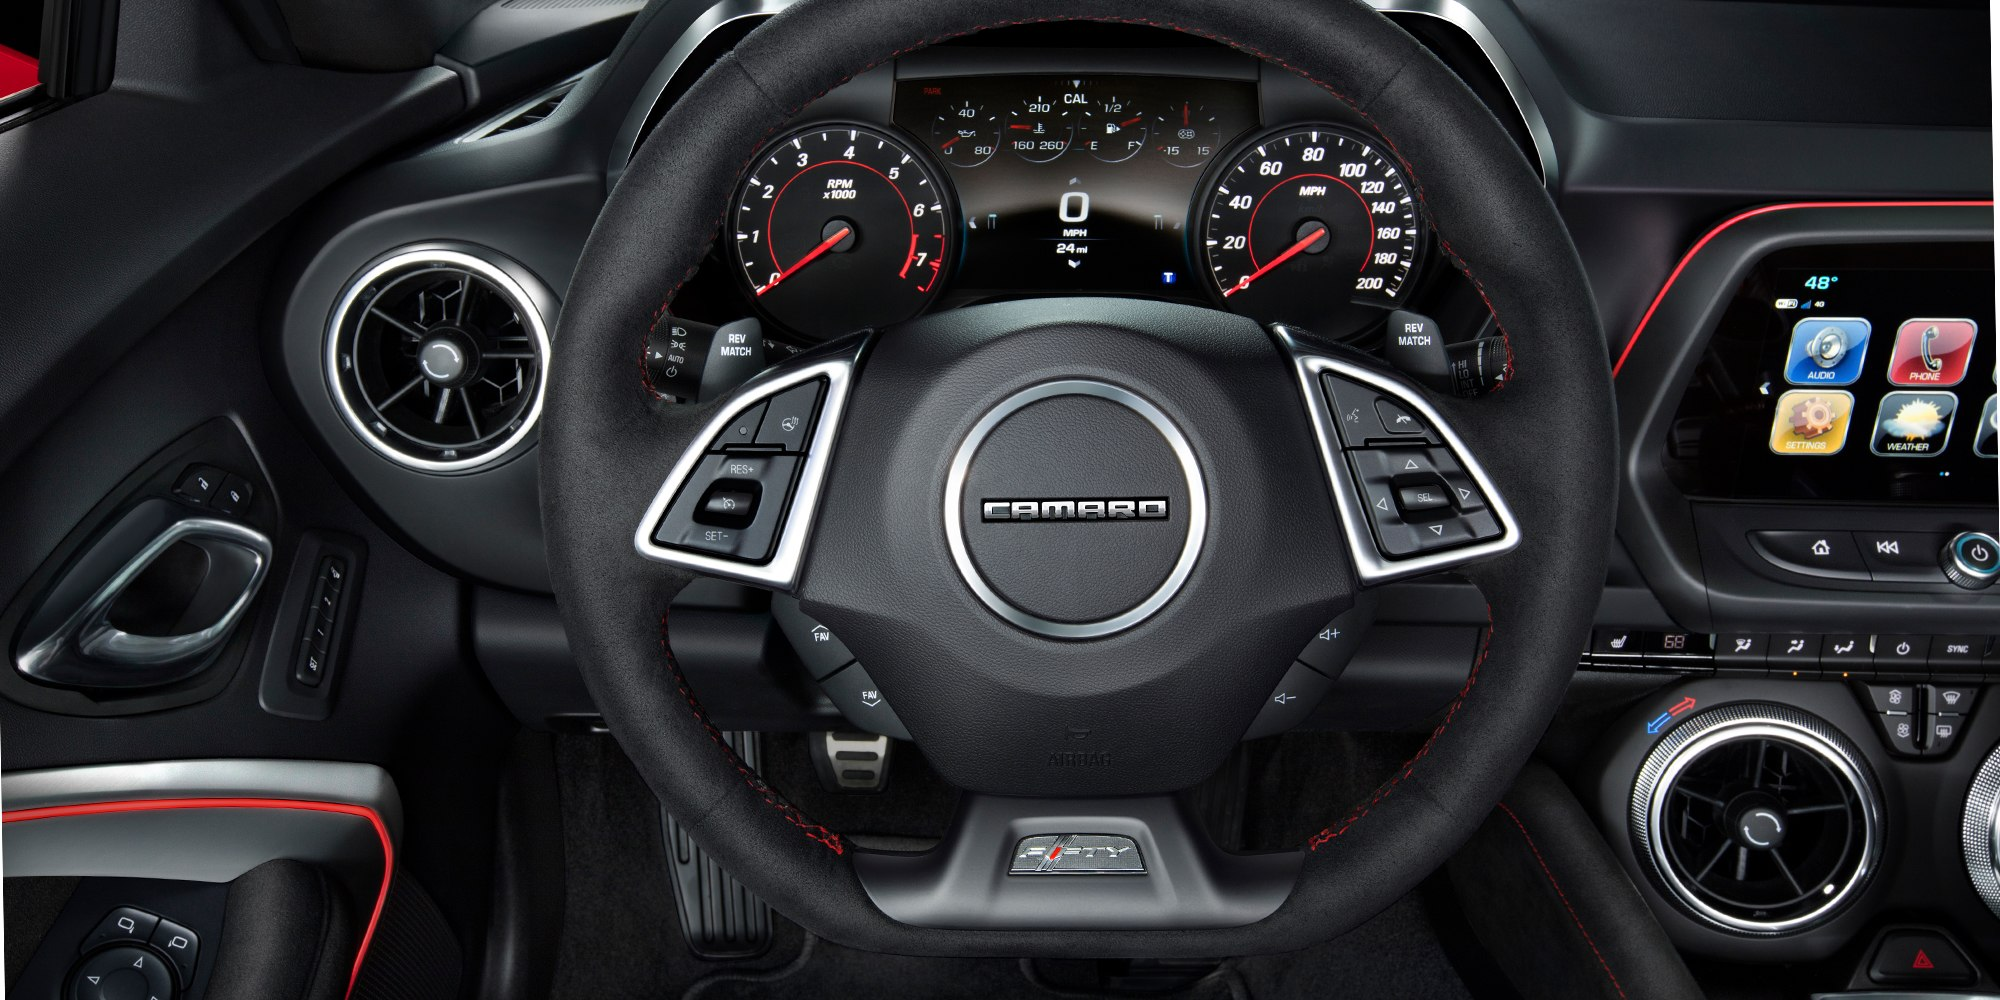 Power at Your Command in the Camaro's Cockpit